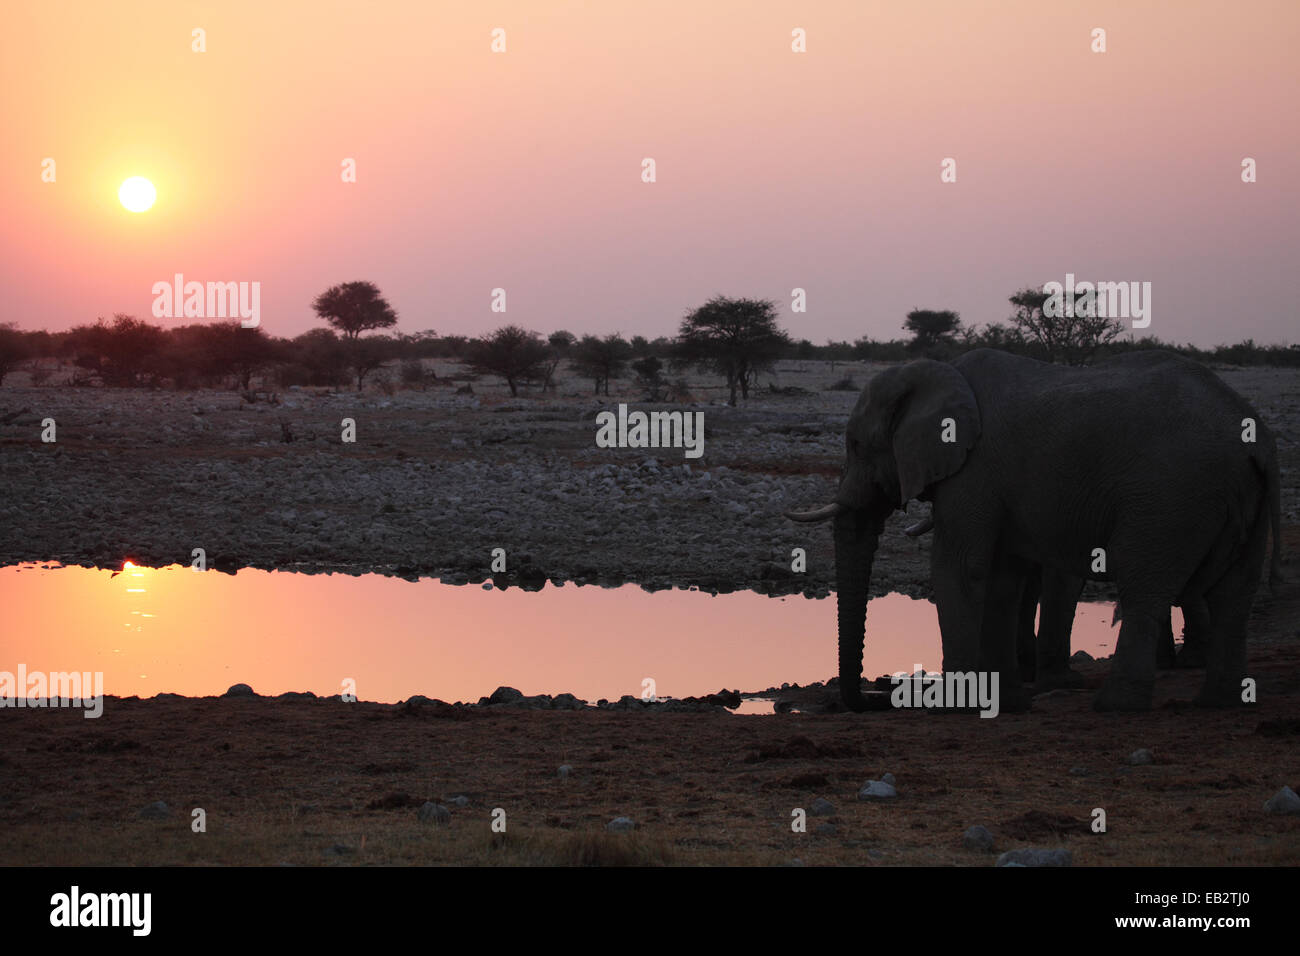 Two elephants at a watering hole as the sun goes down - Stock Image